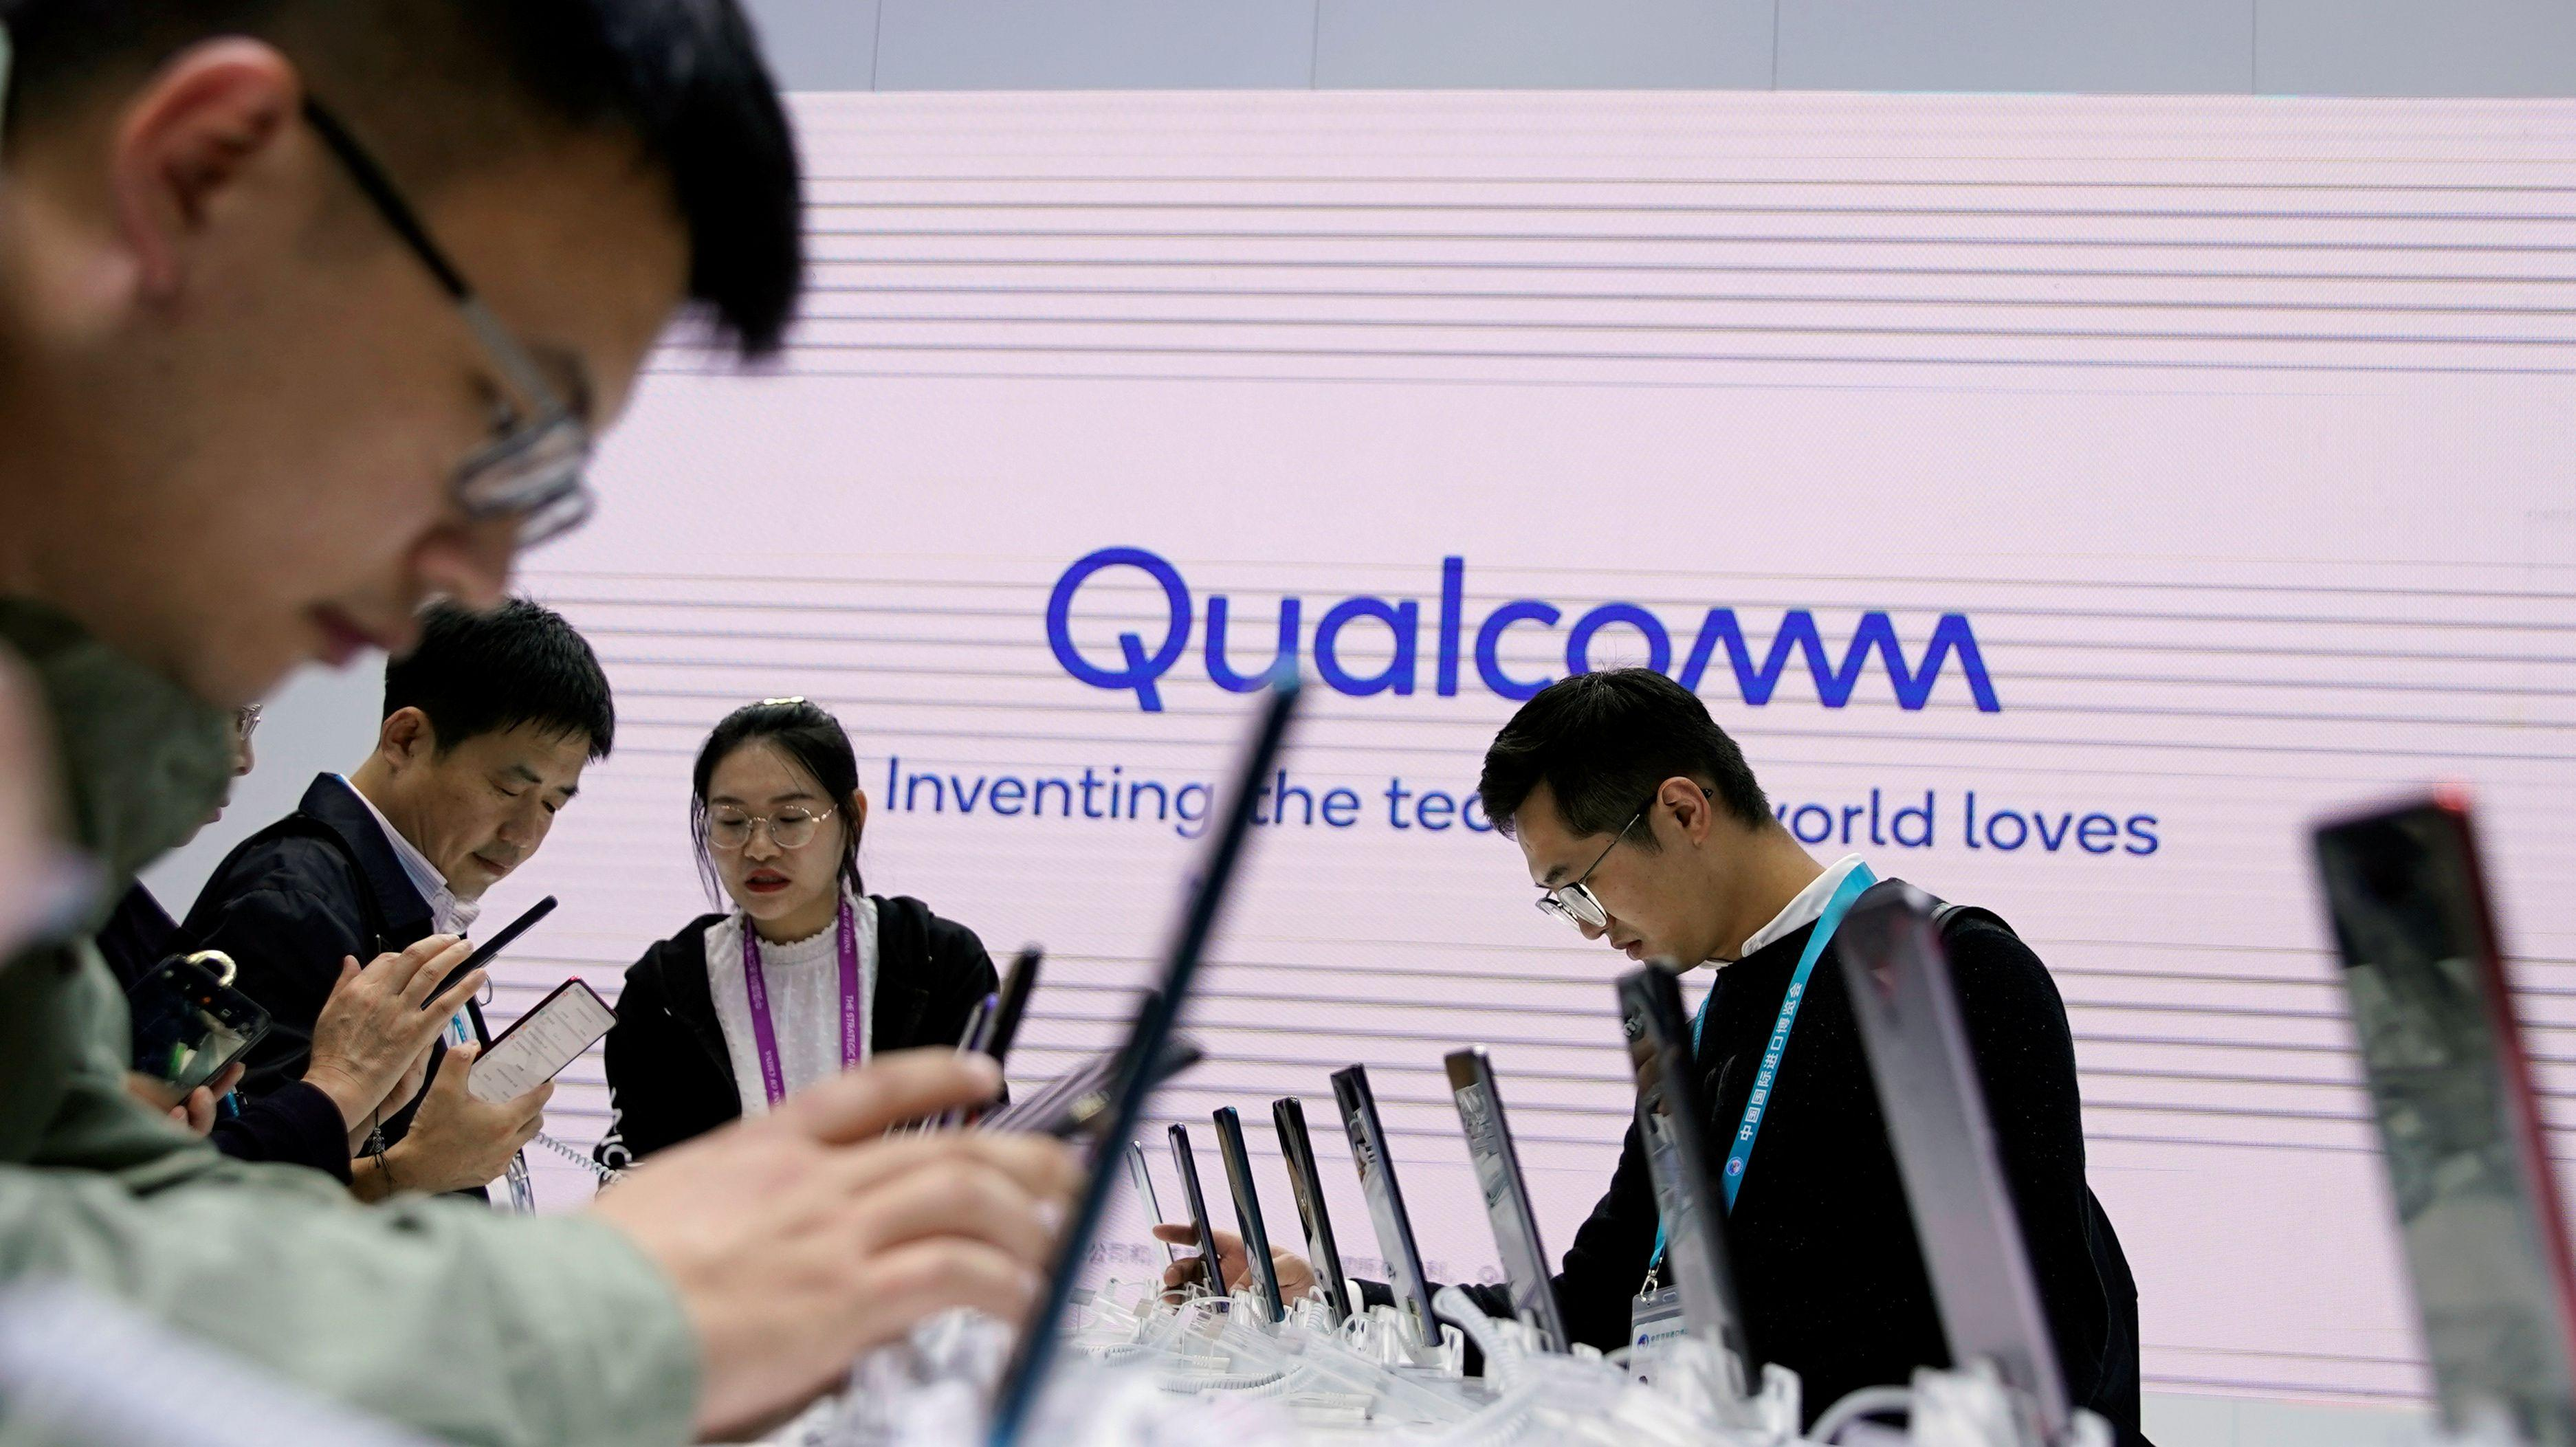 Qualcomm President, Cristiano Amon on why 5G is good for the company